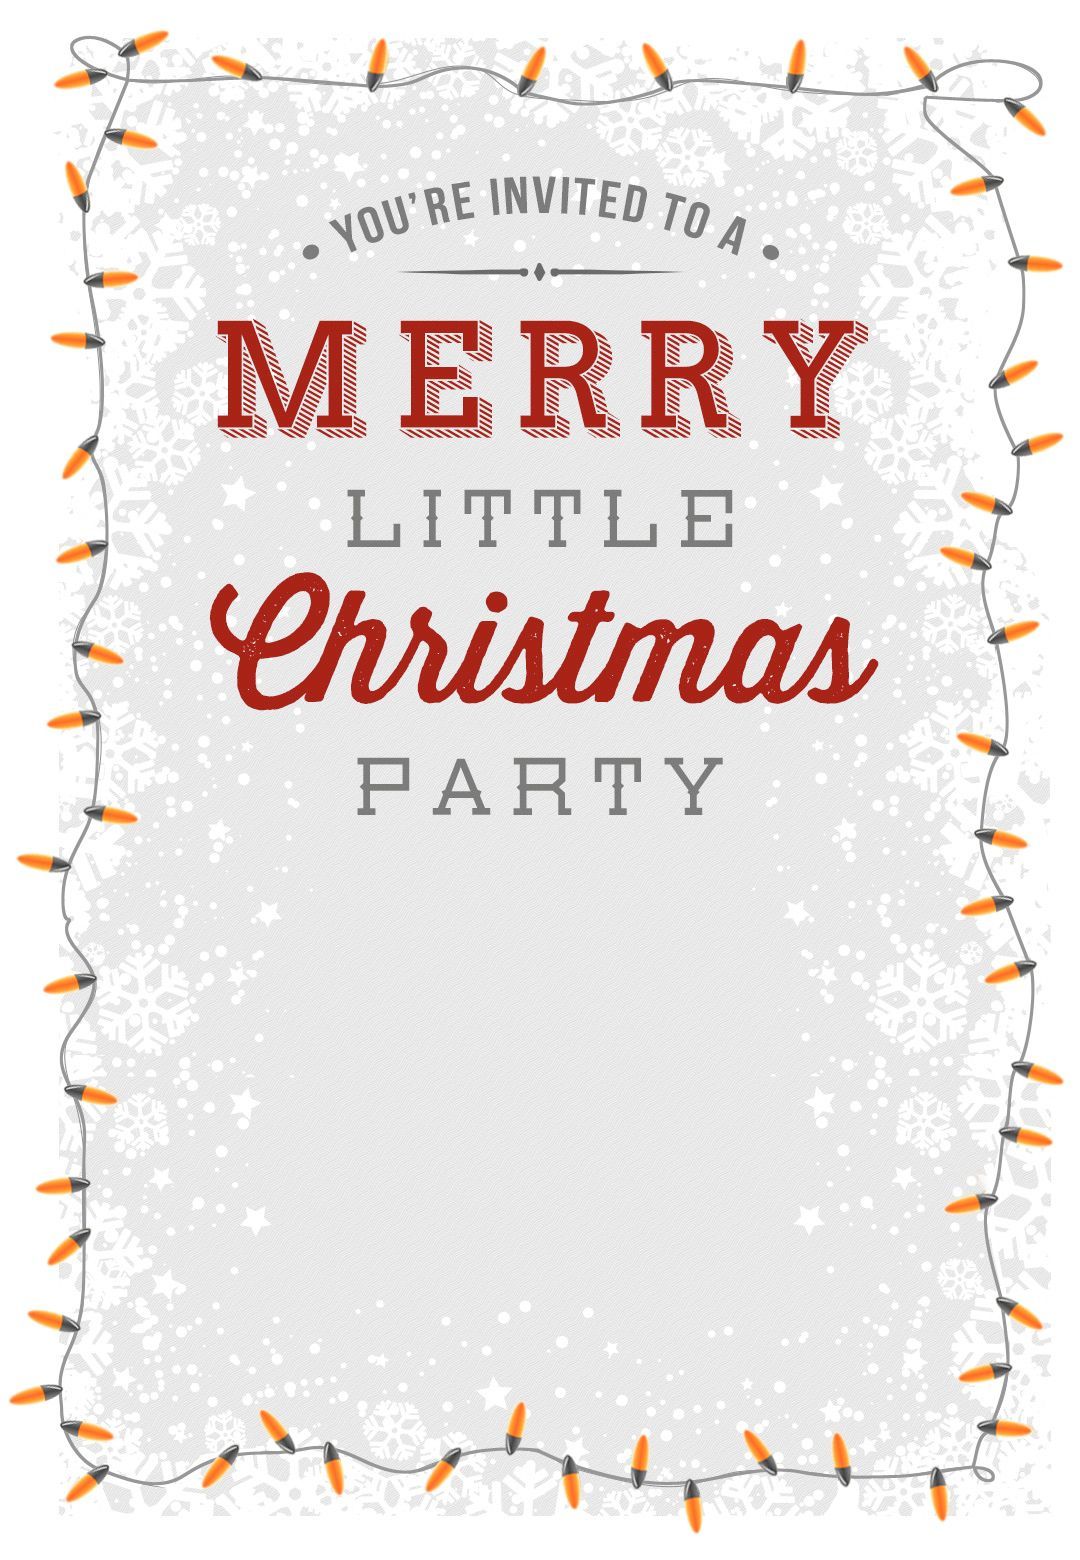 A Merry Little Party - Free Printable Christmas Invitation Template - Free Printable Christmas Party Flyer Templates